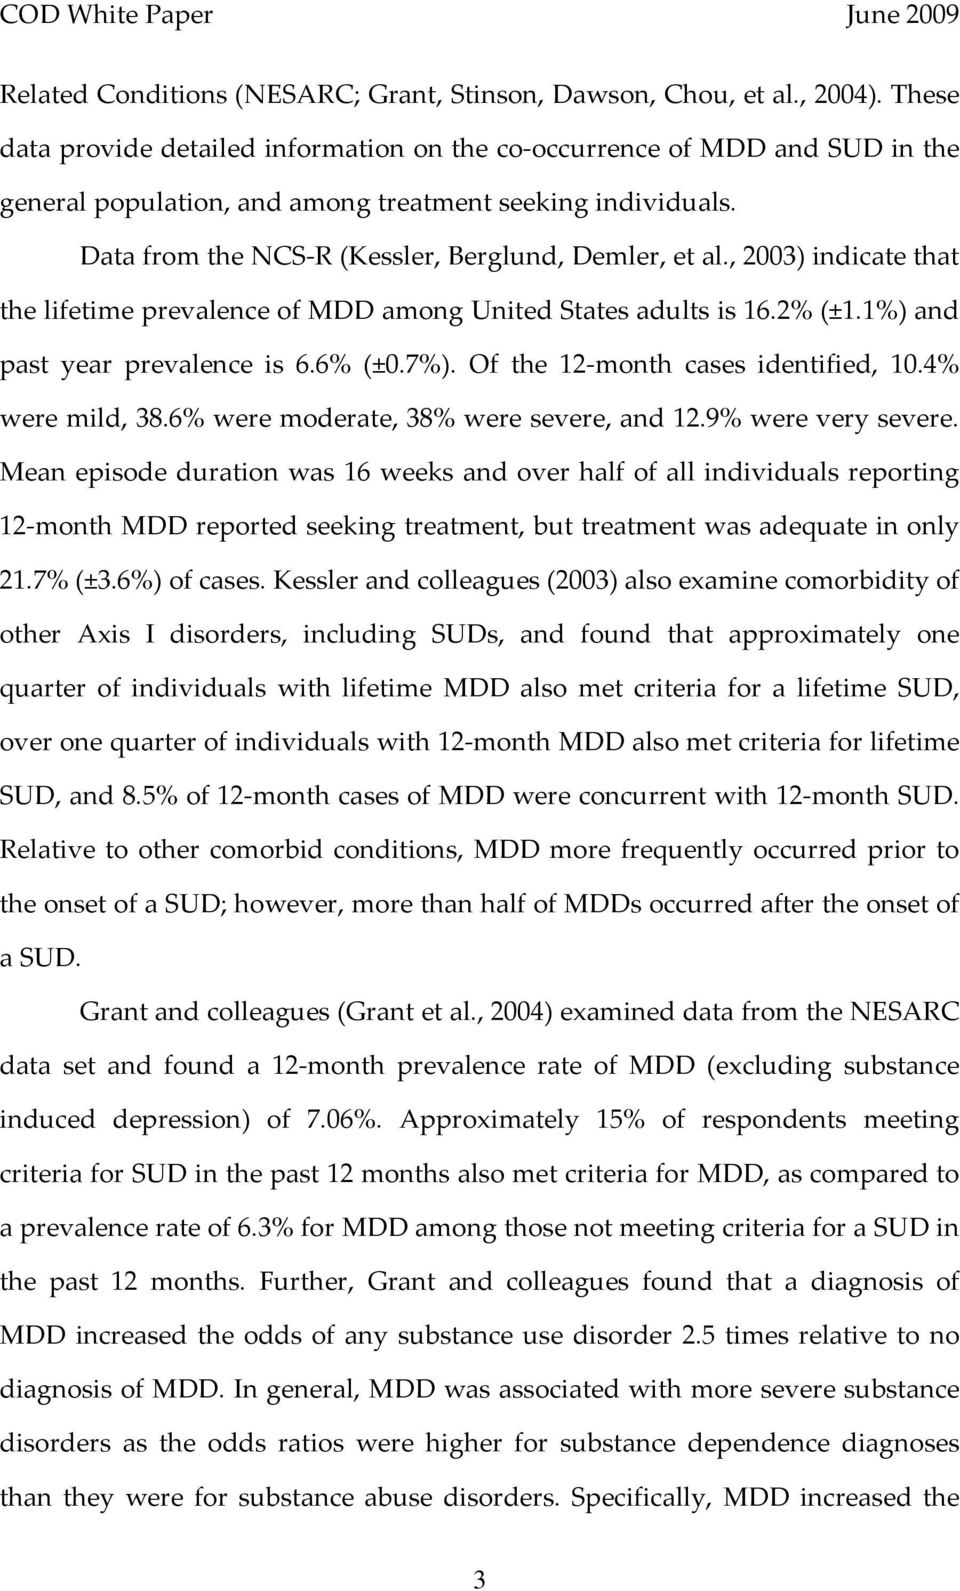 , 2003) indicate that the lifetime prevalence of MDD among United States adults is 16.2% (±1.1%) and past year prevalence is 6.6% (±0.7%). Of the 12 month cases identified, 10.4% were mild, 38.